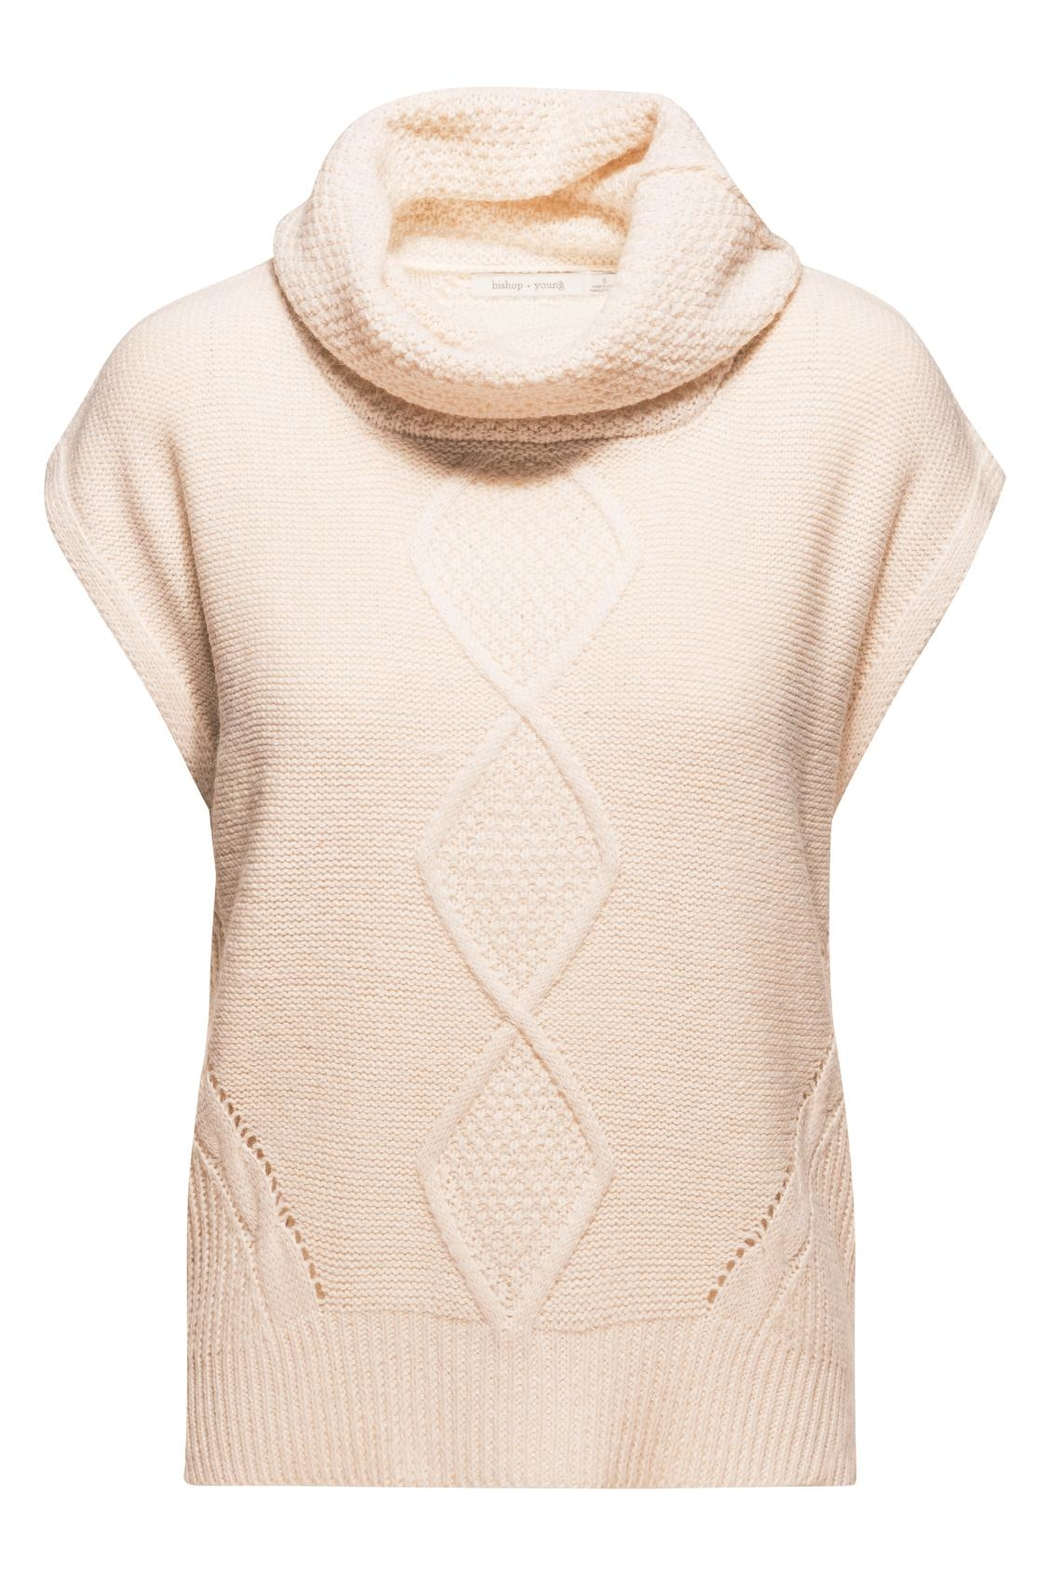 16c9bcac1b9f6 Bishop + Young Cowl Neck Sweater from Indiana by The Bungalow LV ...